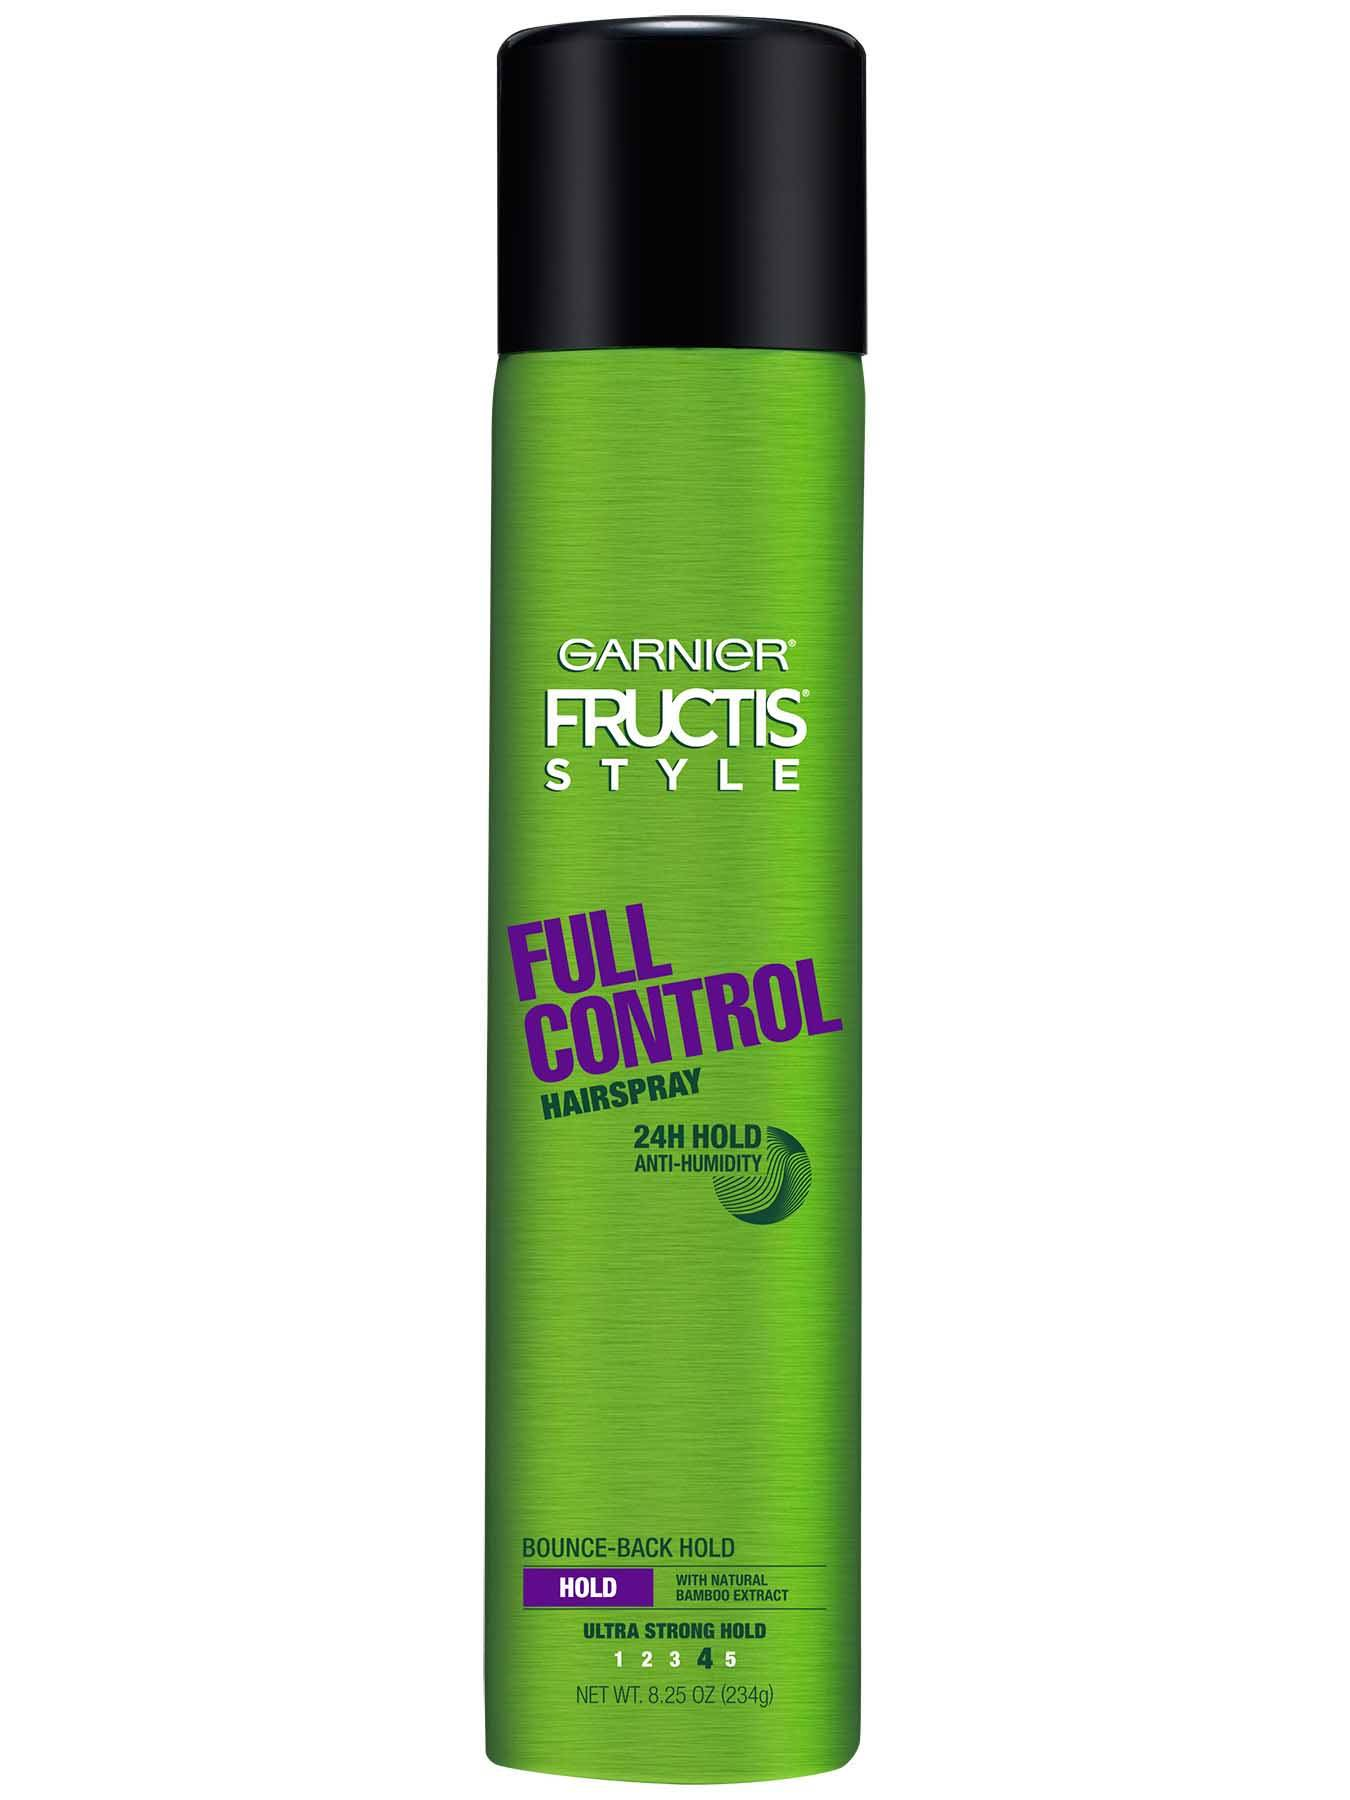 Garnier Fructis Style Full Control Hairspray Front Of Bottle